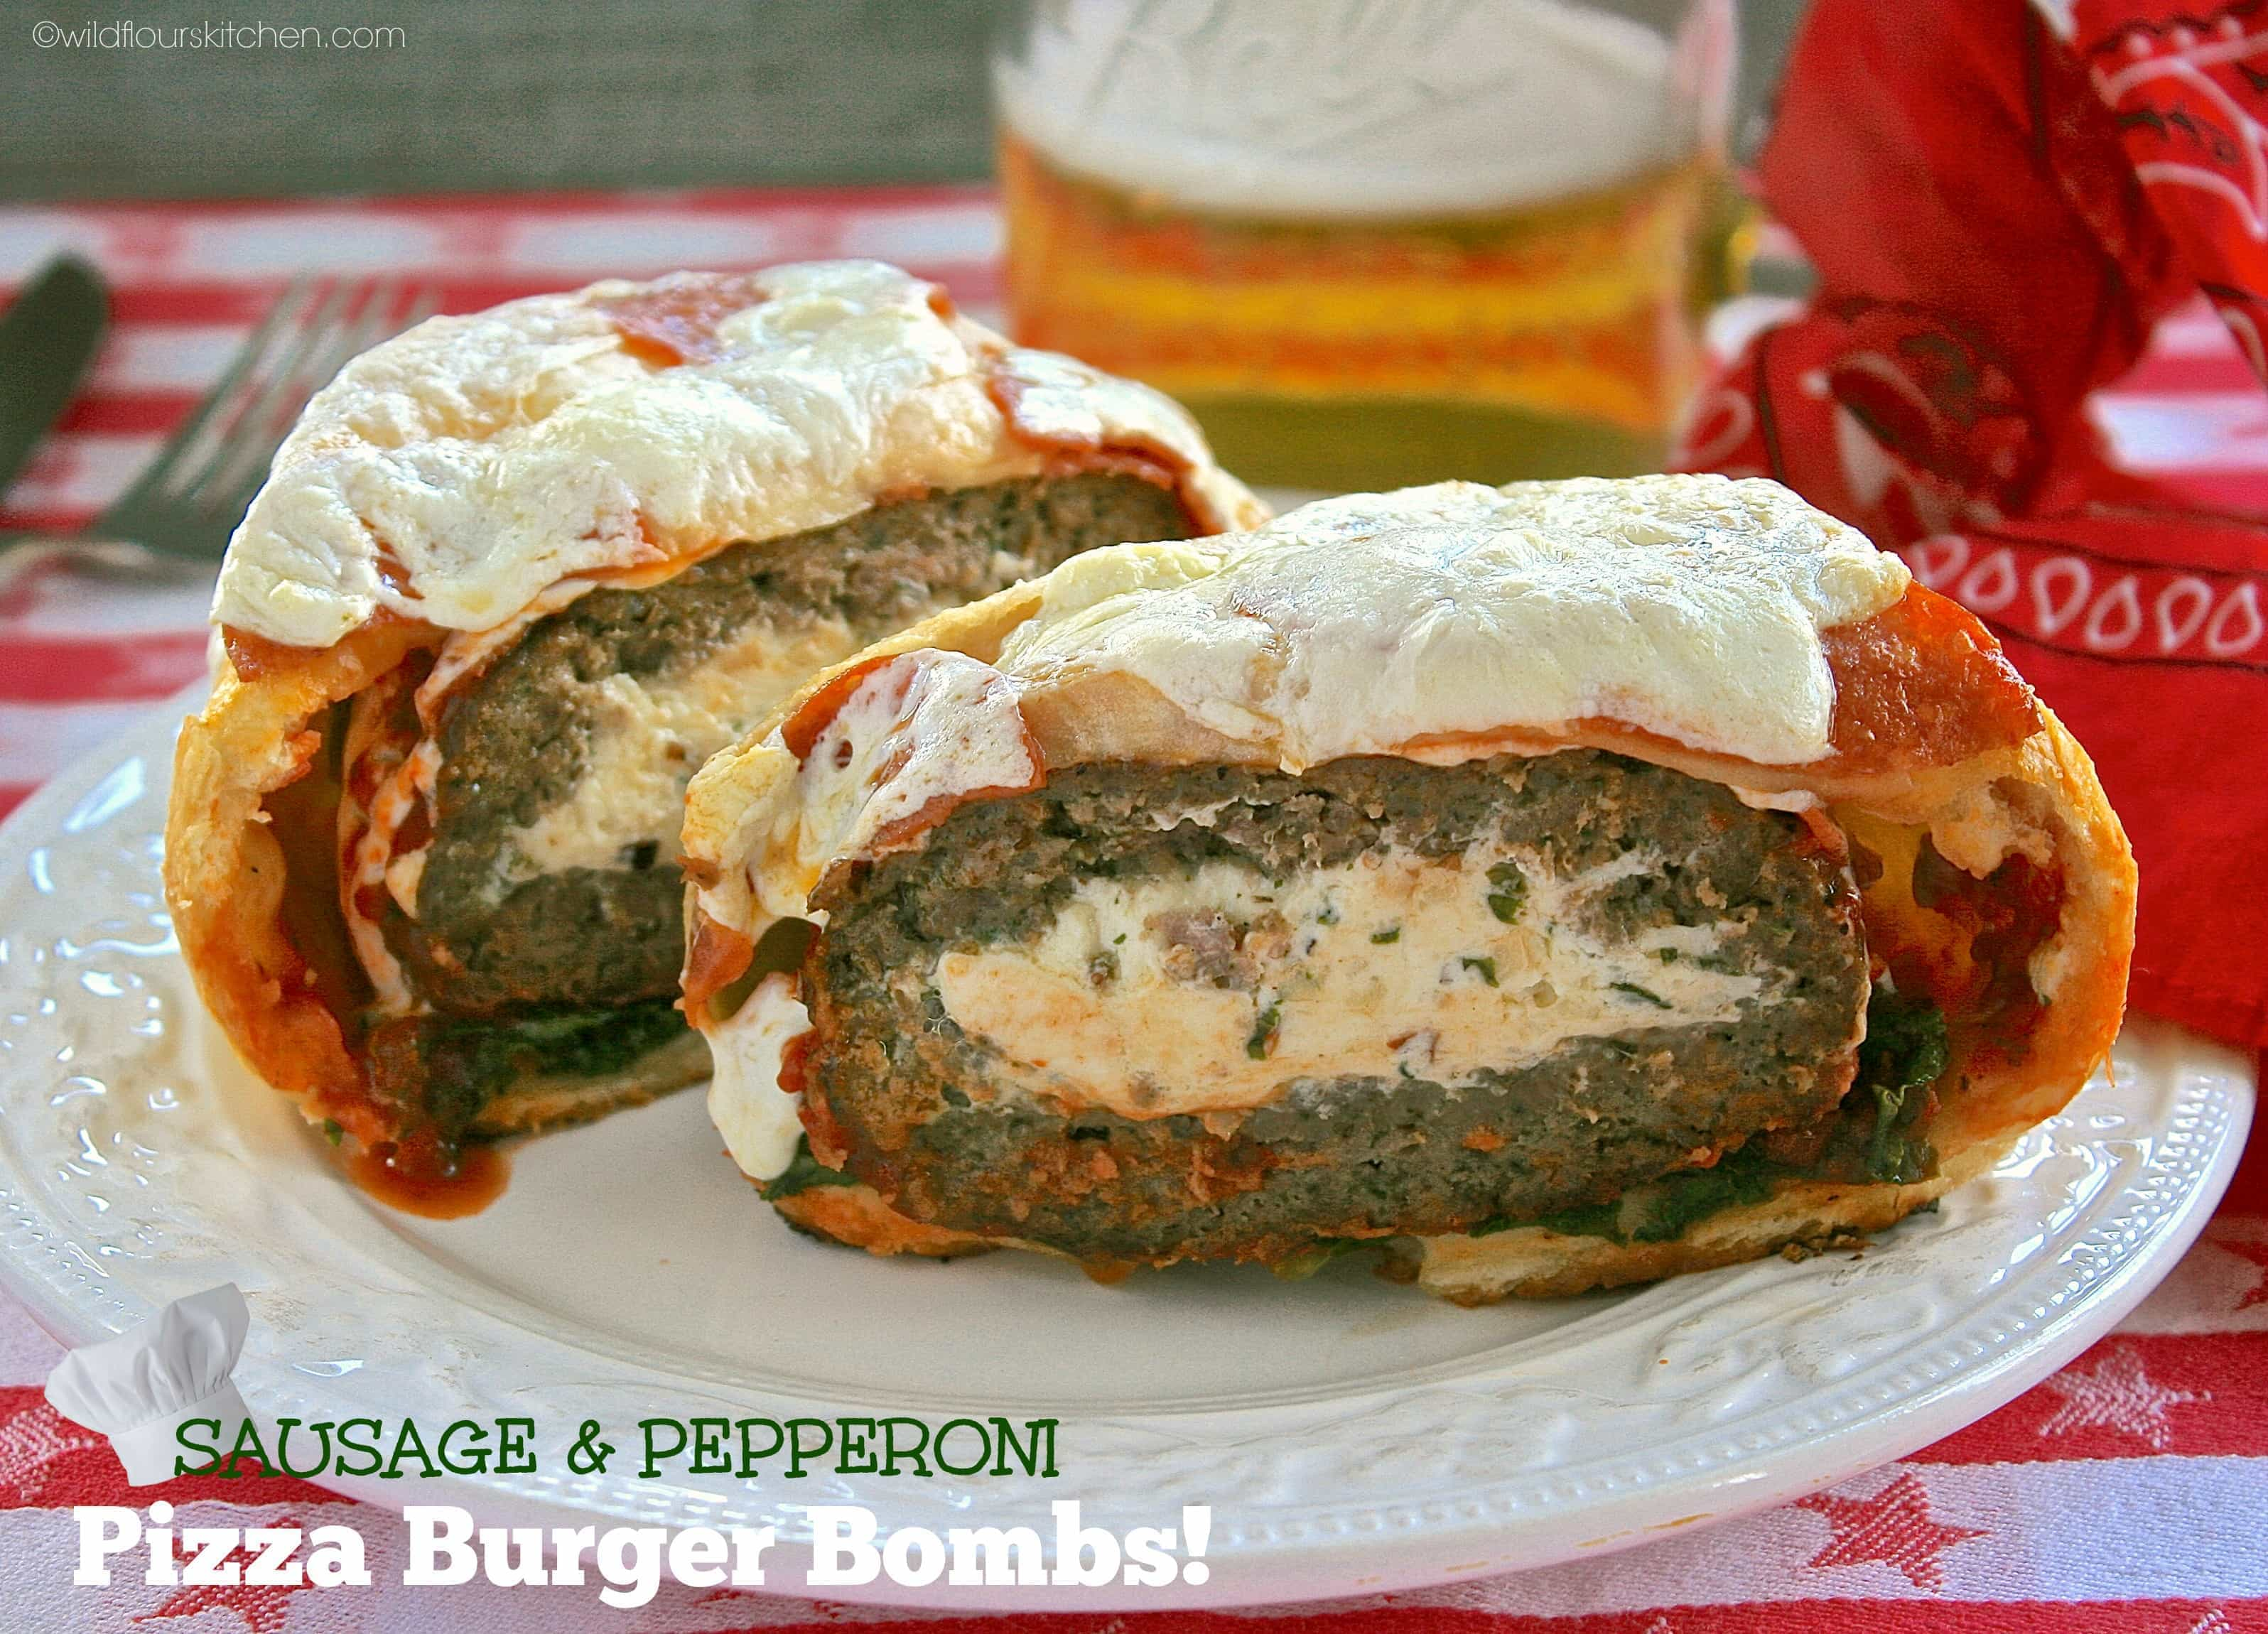 Sausage & Pepperoni Pizza Burger Bombs!